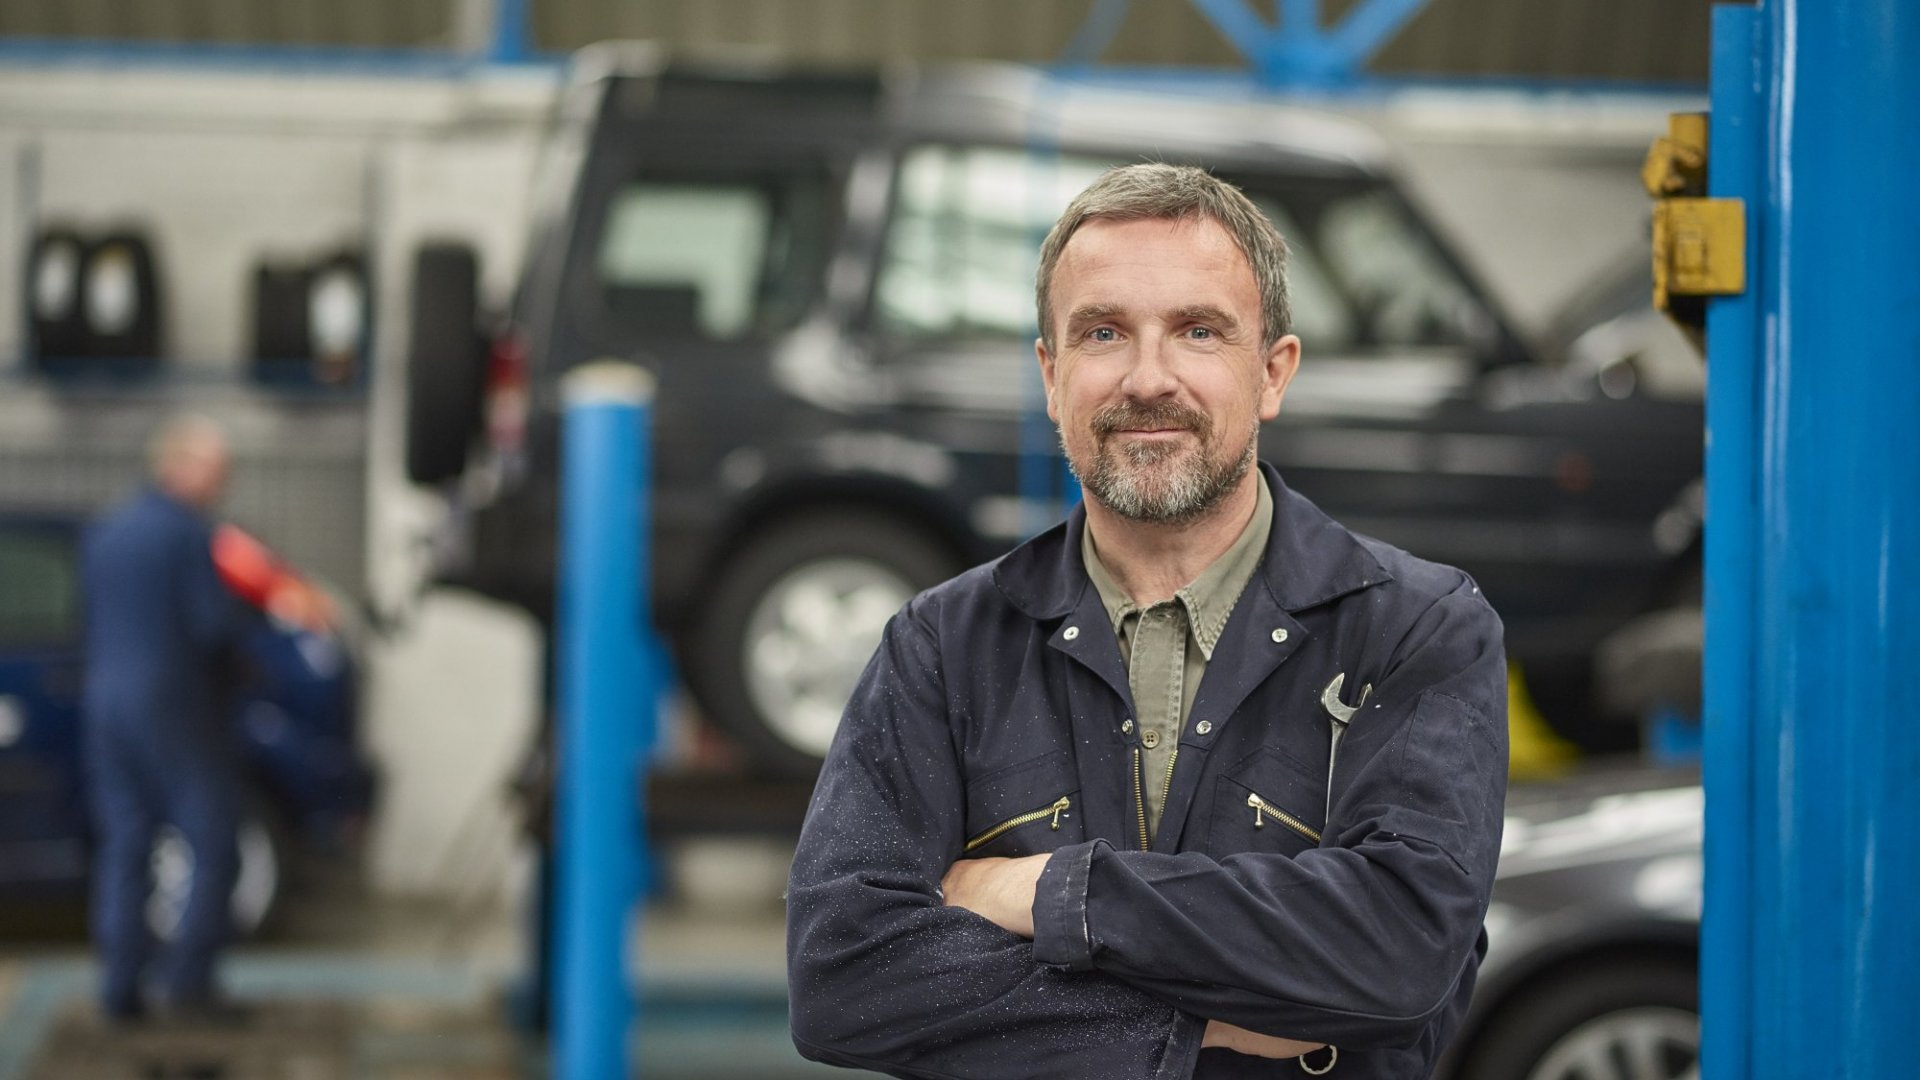 This Car Mechanic's Career Advice Is the Secret to Finding the Best Place to Work